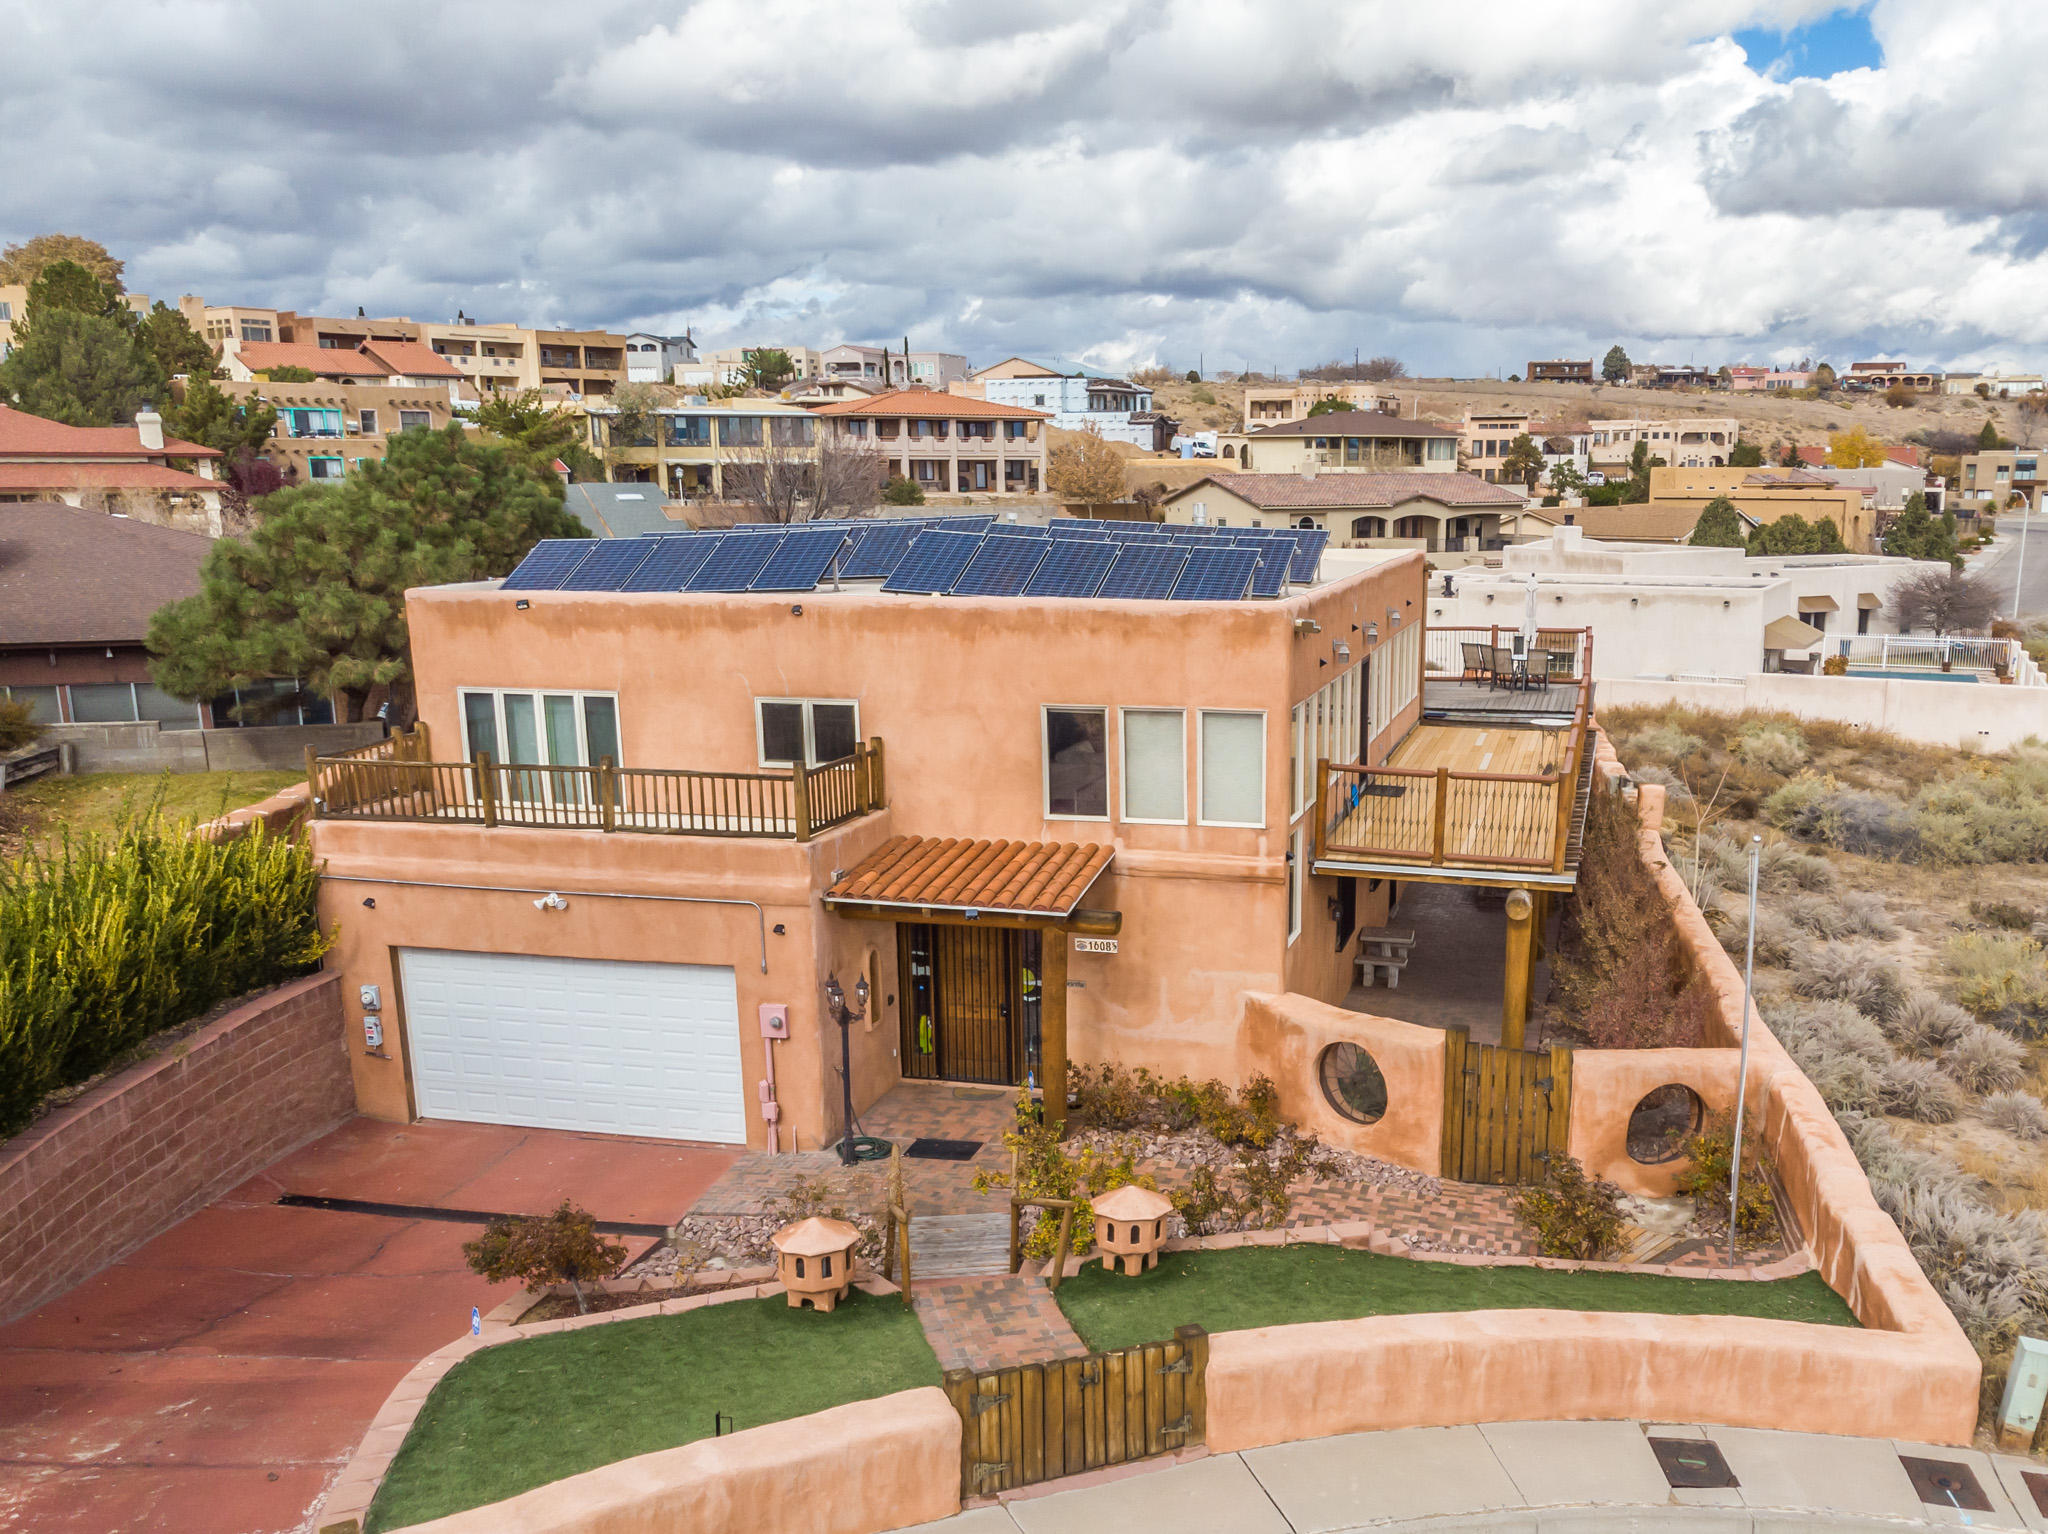 1608 BLUFFSIDE Place NW, Albuquerque, NM 87105 - Albuquerque, NM real estate listing